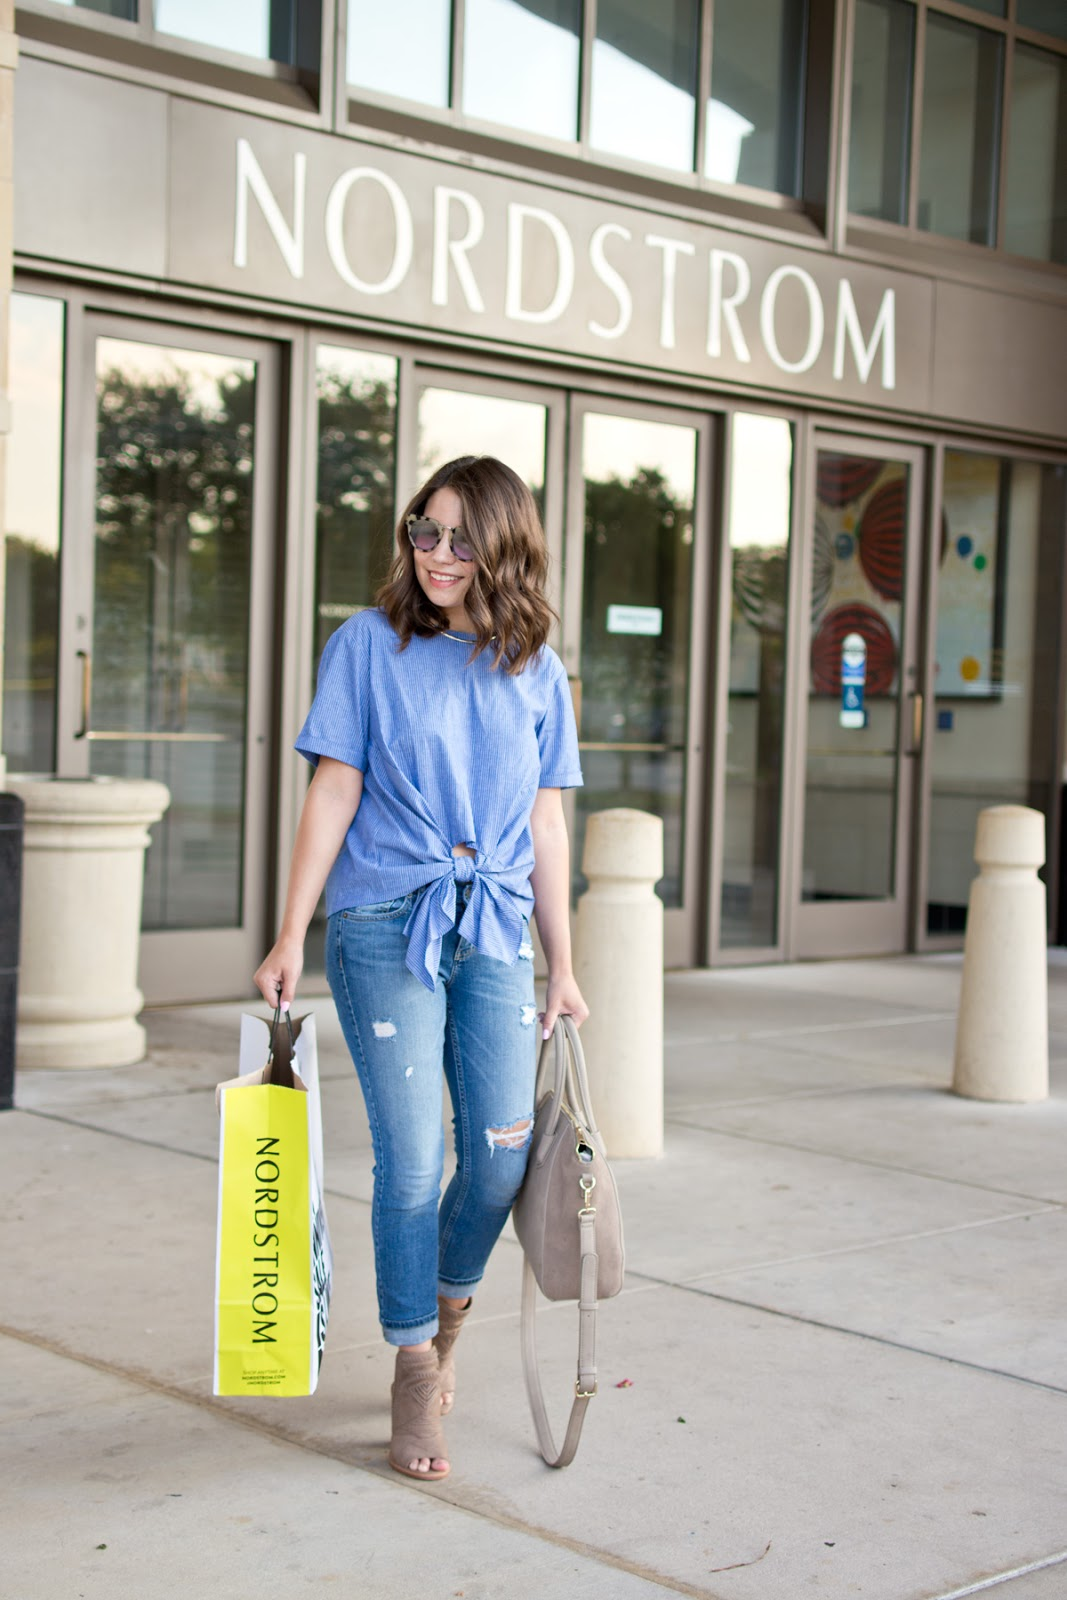 Nordstrom Anniversary Sale Shopping Outfit Vince Camuto Booties Blue Tie Front Tee Boyfriend Jeans Sole Society Bag